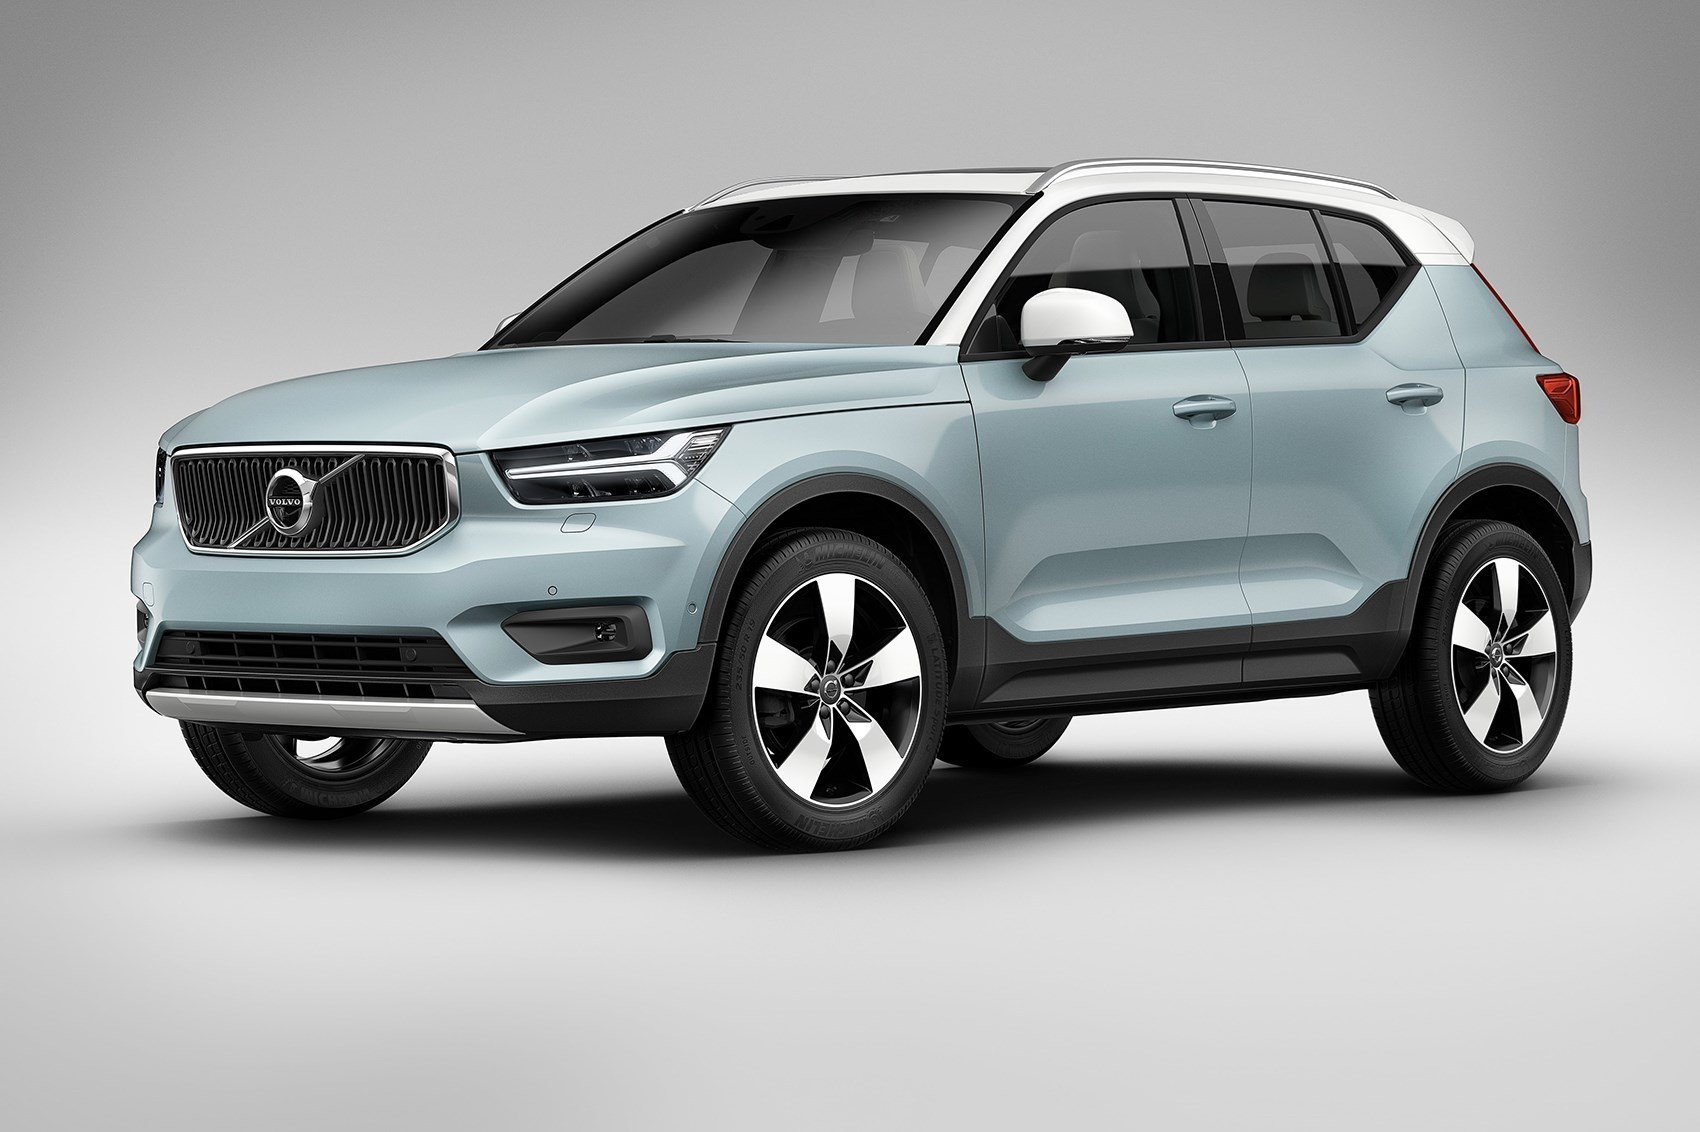 Latest Volvo Xc40 Revealed All New Baby Crossover Is Go For 2018 Free Download